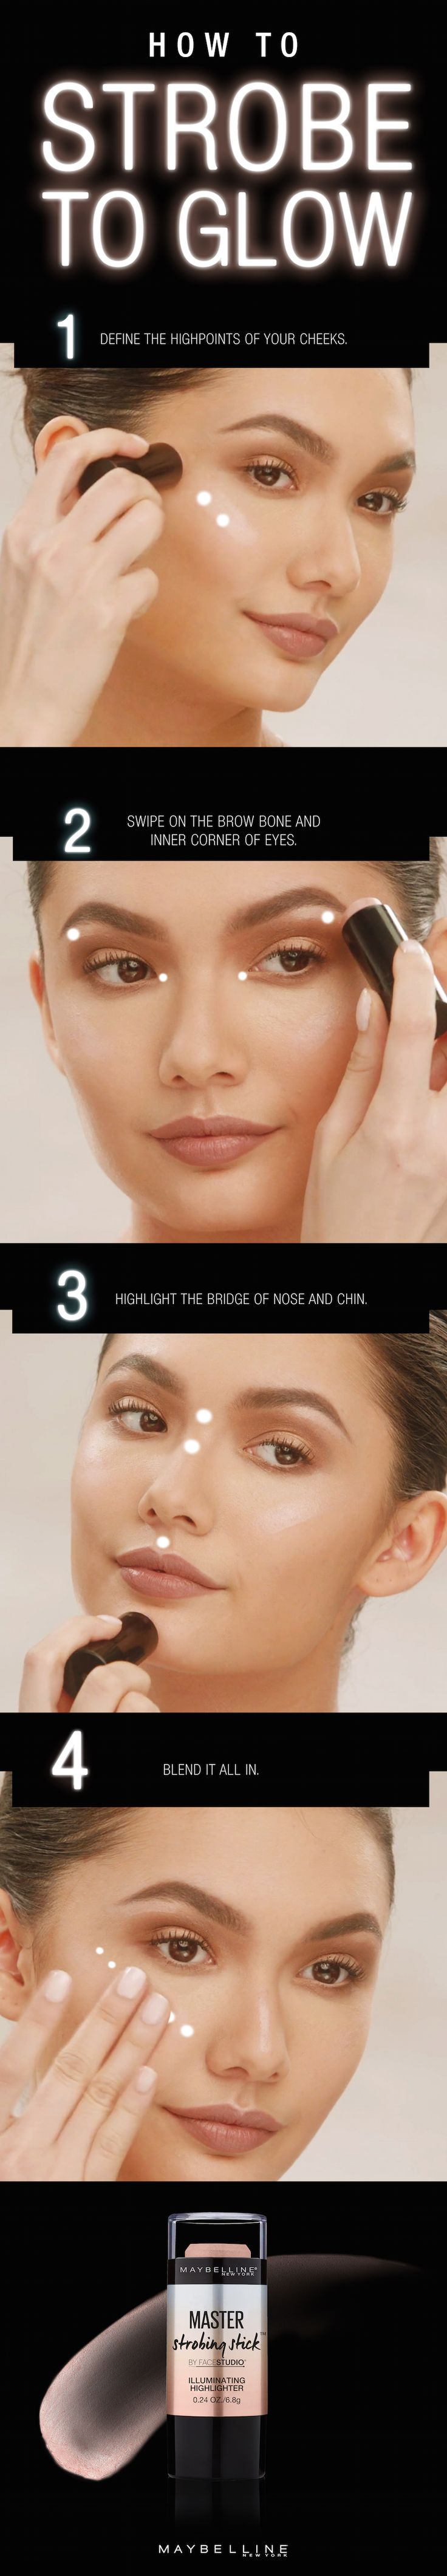 Maybelline Master Strobing Stick lights up your best features. This step-by-step tutorial will show you how to make it happen. How To: Apply to high points of your face, blending with fingertips. The illuminating shimmer completes any summer makeup look. Bring a simple makeup look to the next level or go full glam by layering on the highlight. Get ready to flaunt effortless dimension and stunning radiance. Let's strobe to glow.